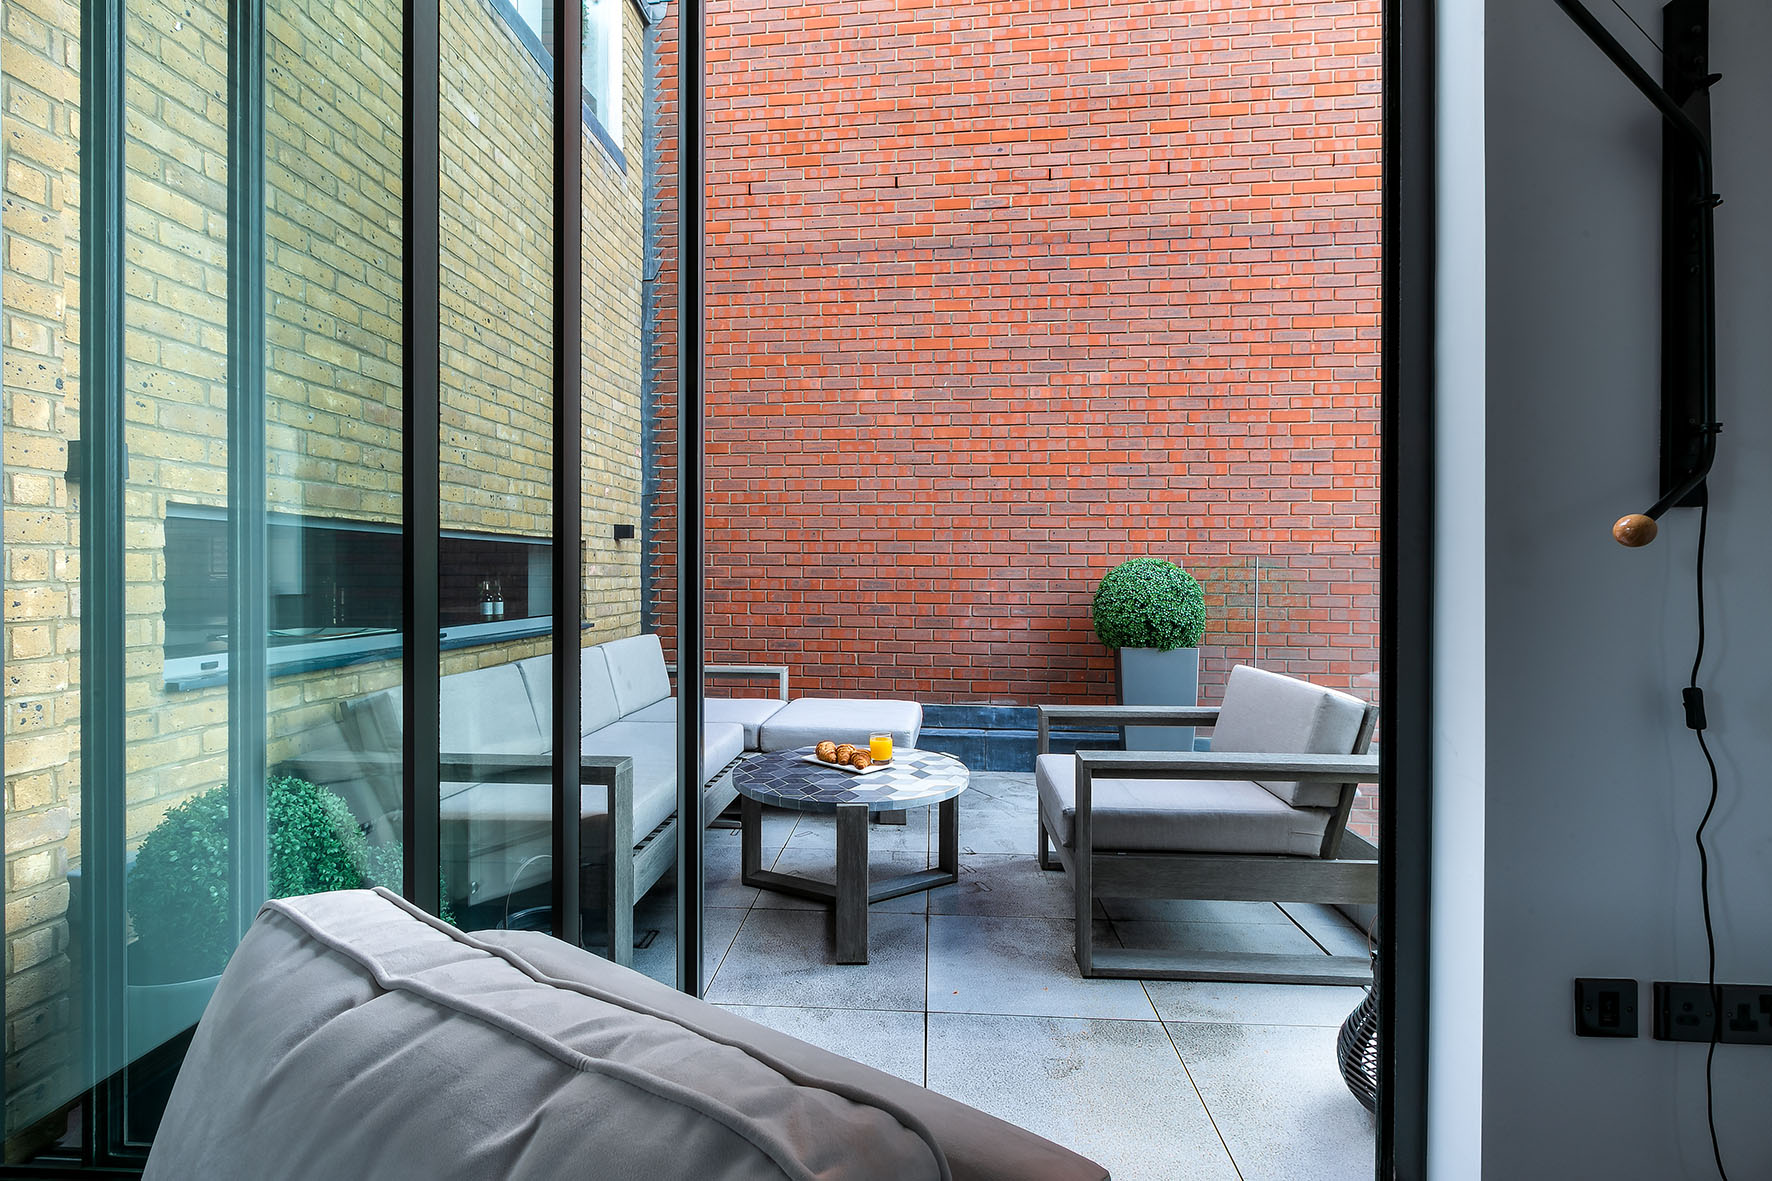 Lovelydays luxury service apartment rental - London - Soho - Great Marlborough St. IX - Lovelysuite - 2 bedrooms - 2 bathrooms - Huge terrace - 5 star apartment in london - ff5755f37086 - Lovelydays